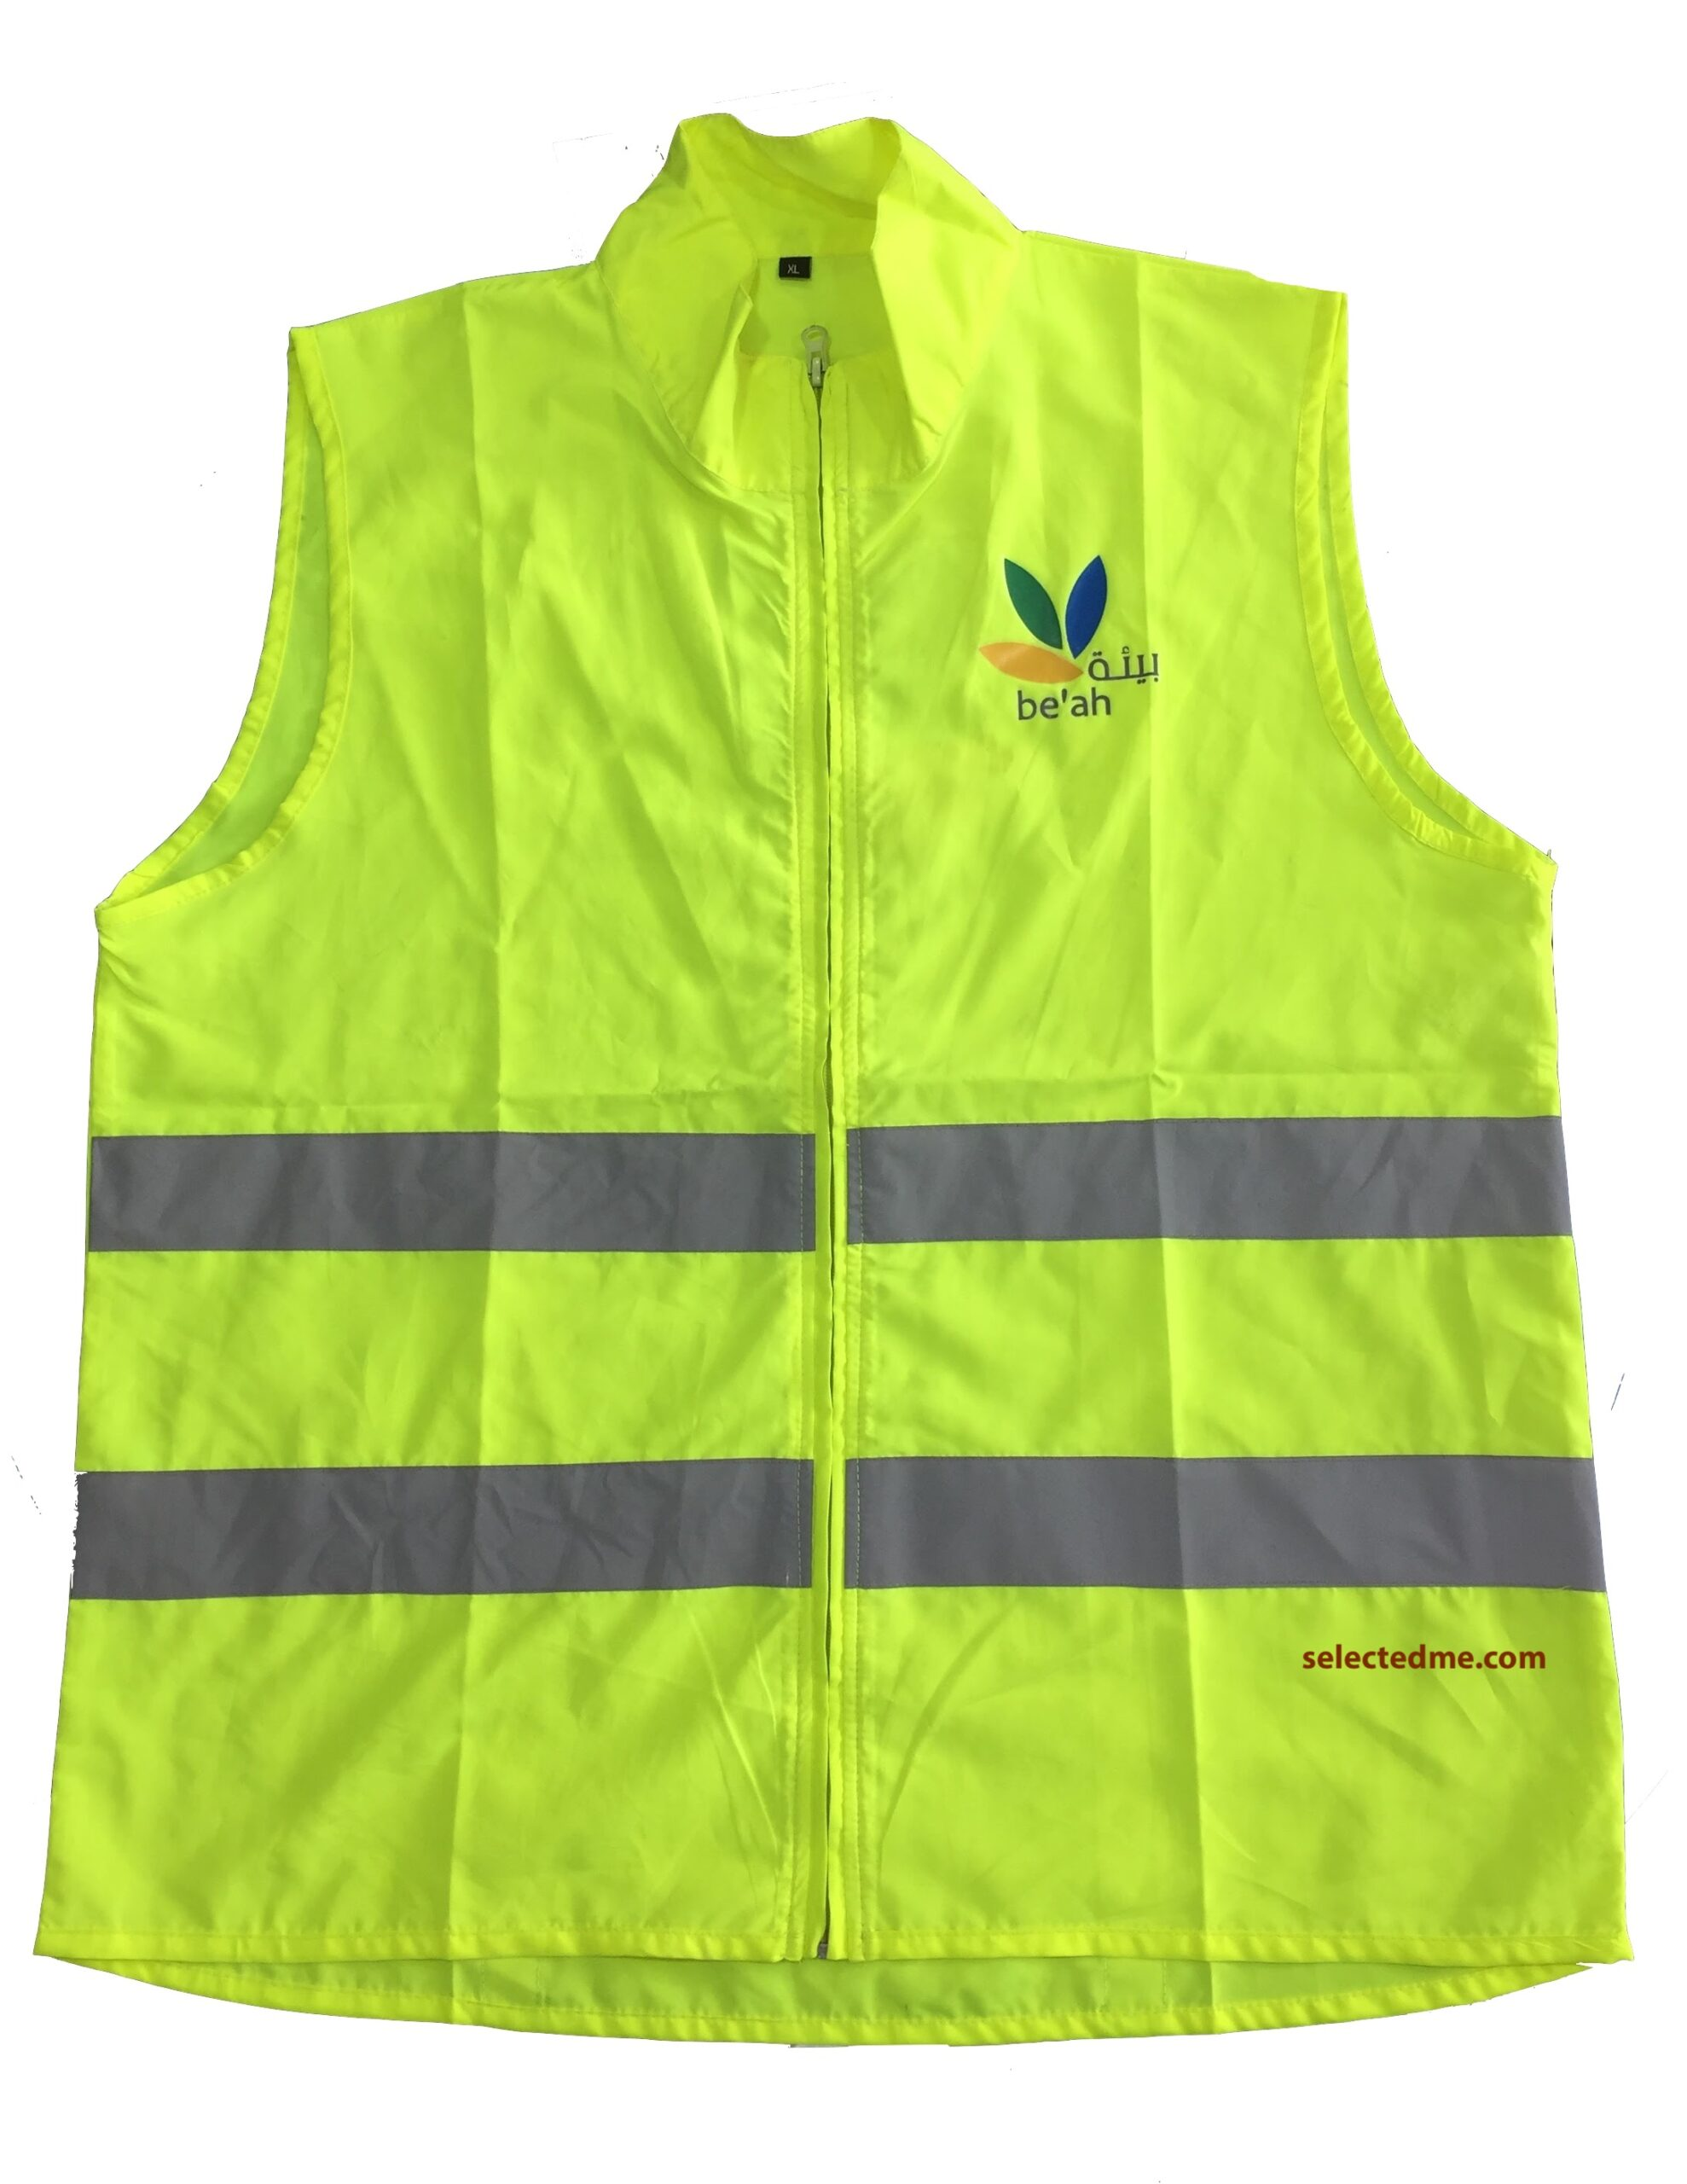 Personalized Safety Jackets - Personalized Reflective Jackets